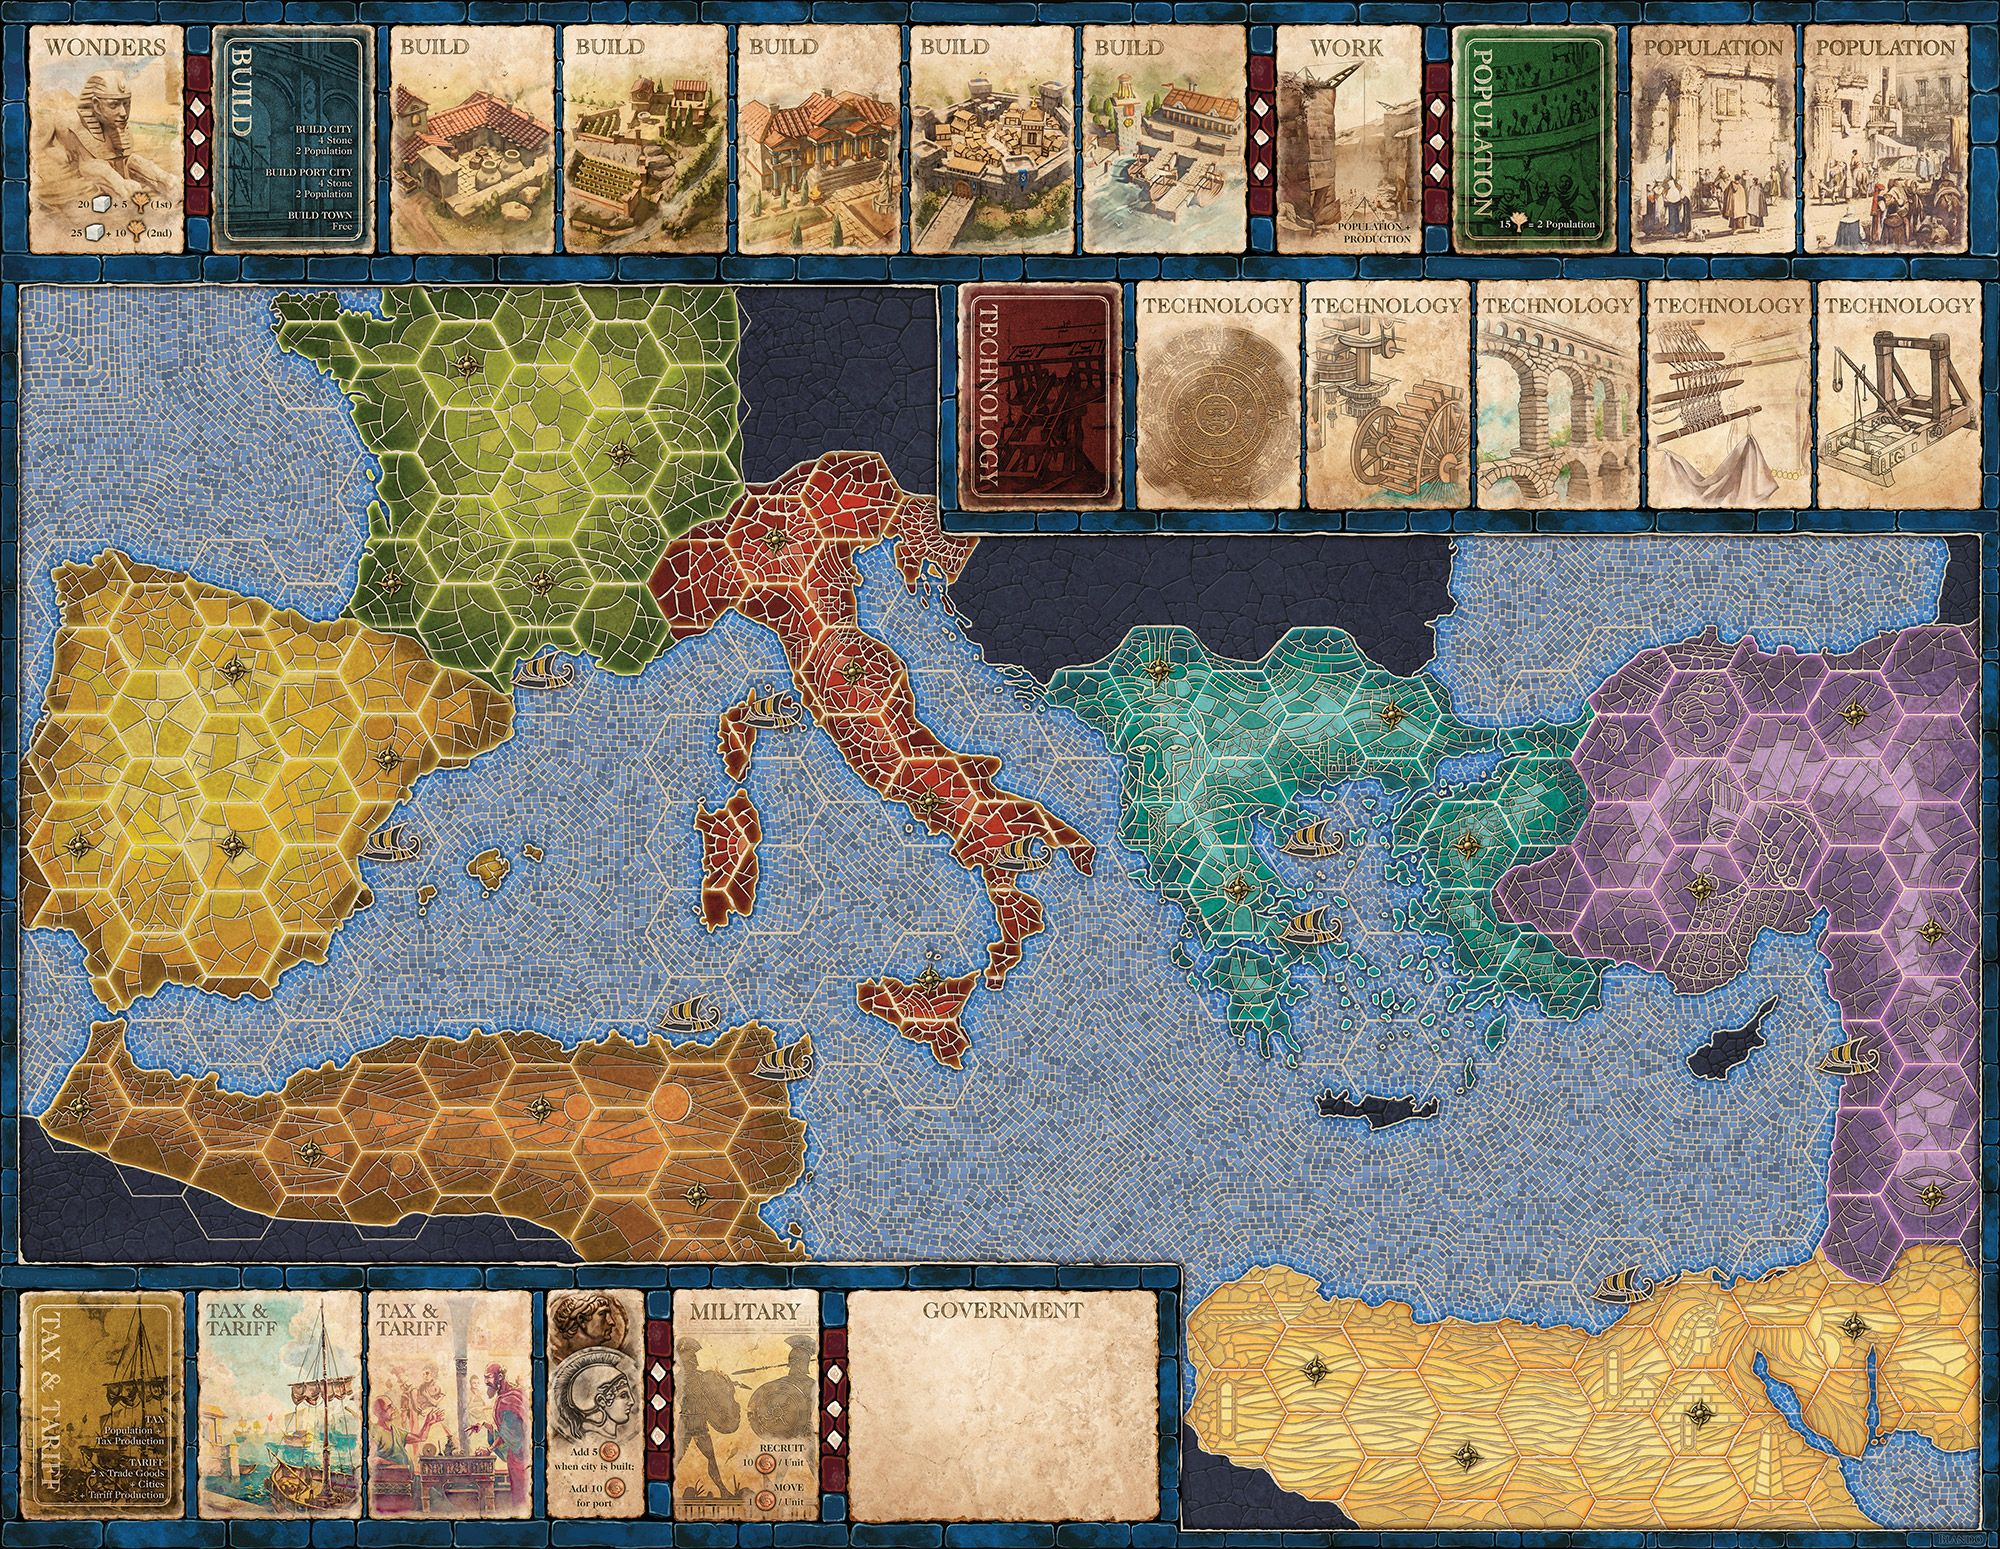 Mosaic the board map